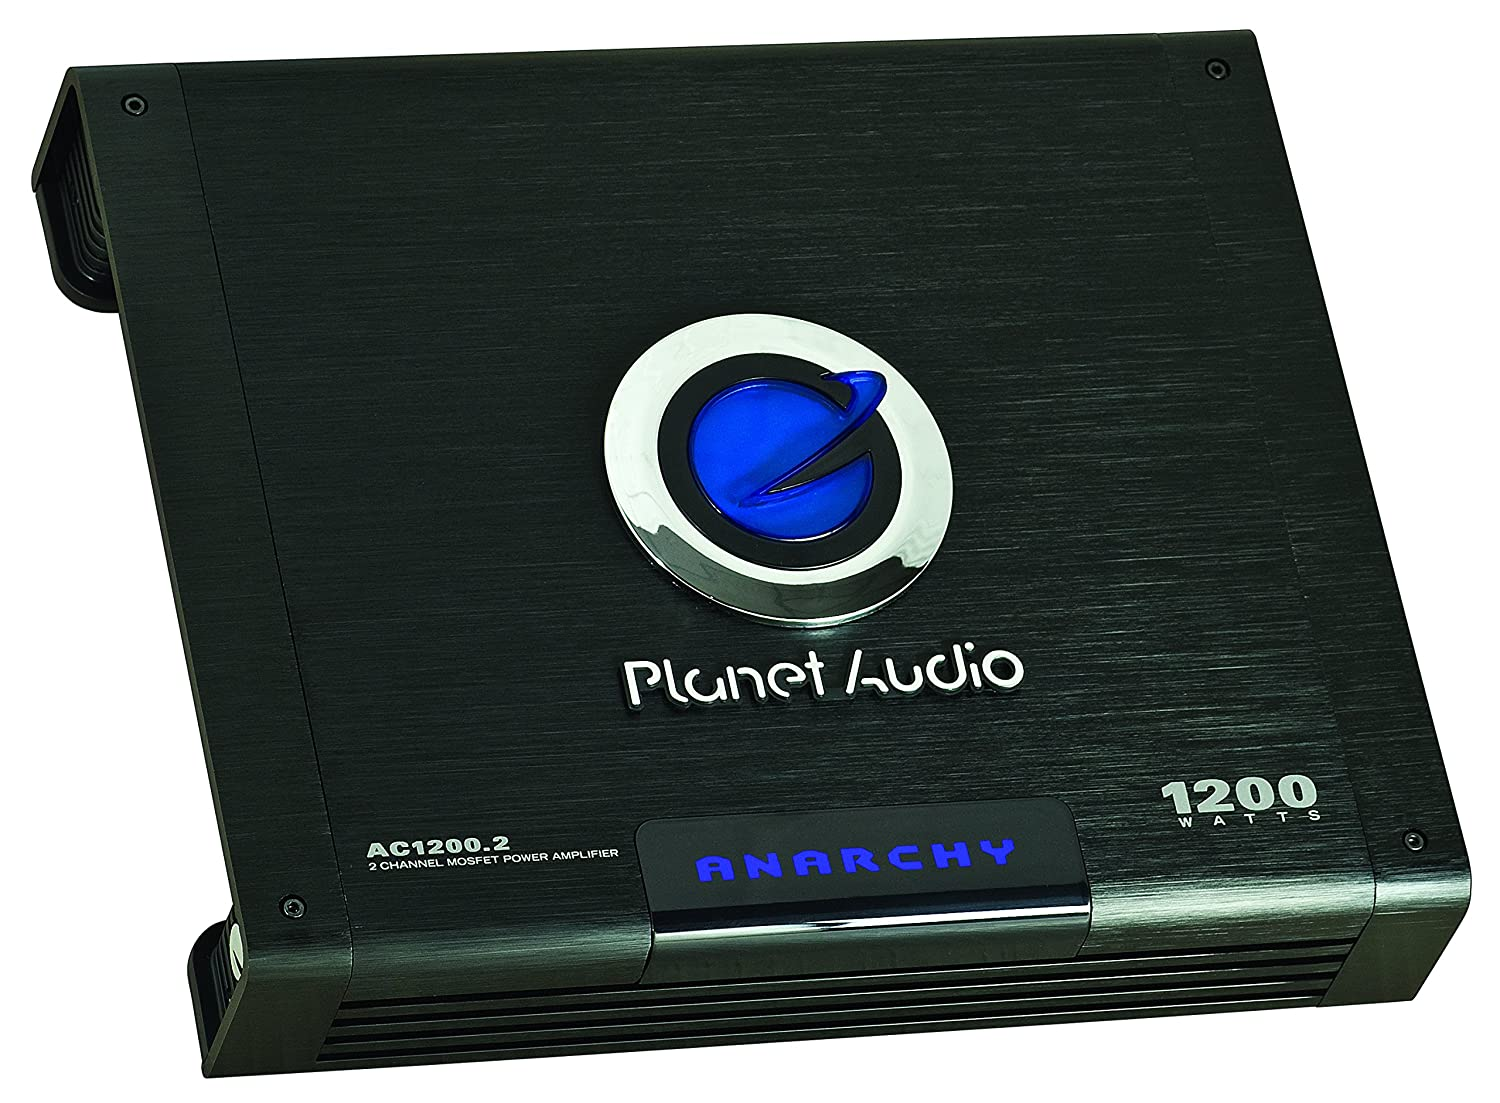 Planet Audio Ac12002 Anarchy 1200 Watt 2 Channel 4 1000w Mosfet Amplifier Circuit Ohm Stable Class A B Full Range Bridgeable Car With Remote Subwoofer